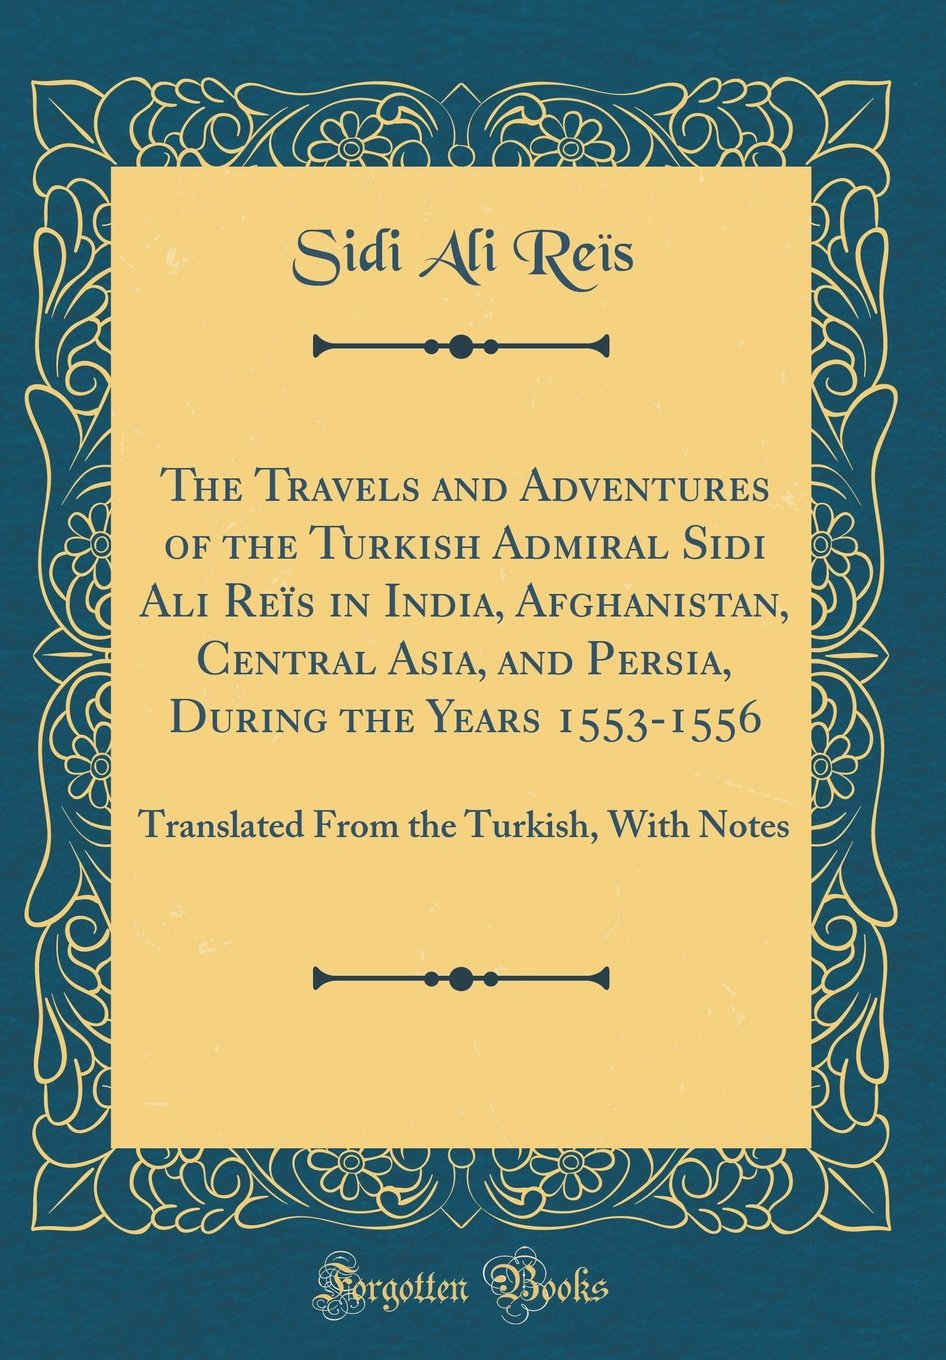 The Travels and Adventures of the Turkish Admiral Sidi Ali Reïs in India, Afghanistan, Central Asia, and Persia, During the Years 1553-1556: Translated From the Turkish, With Notes (Classic Reprint)